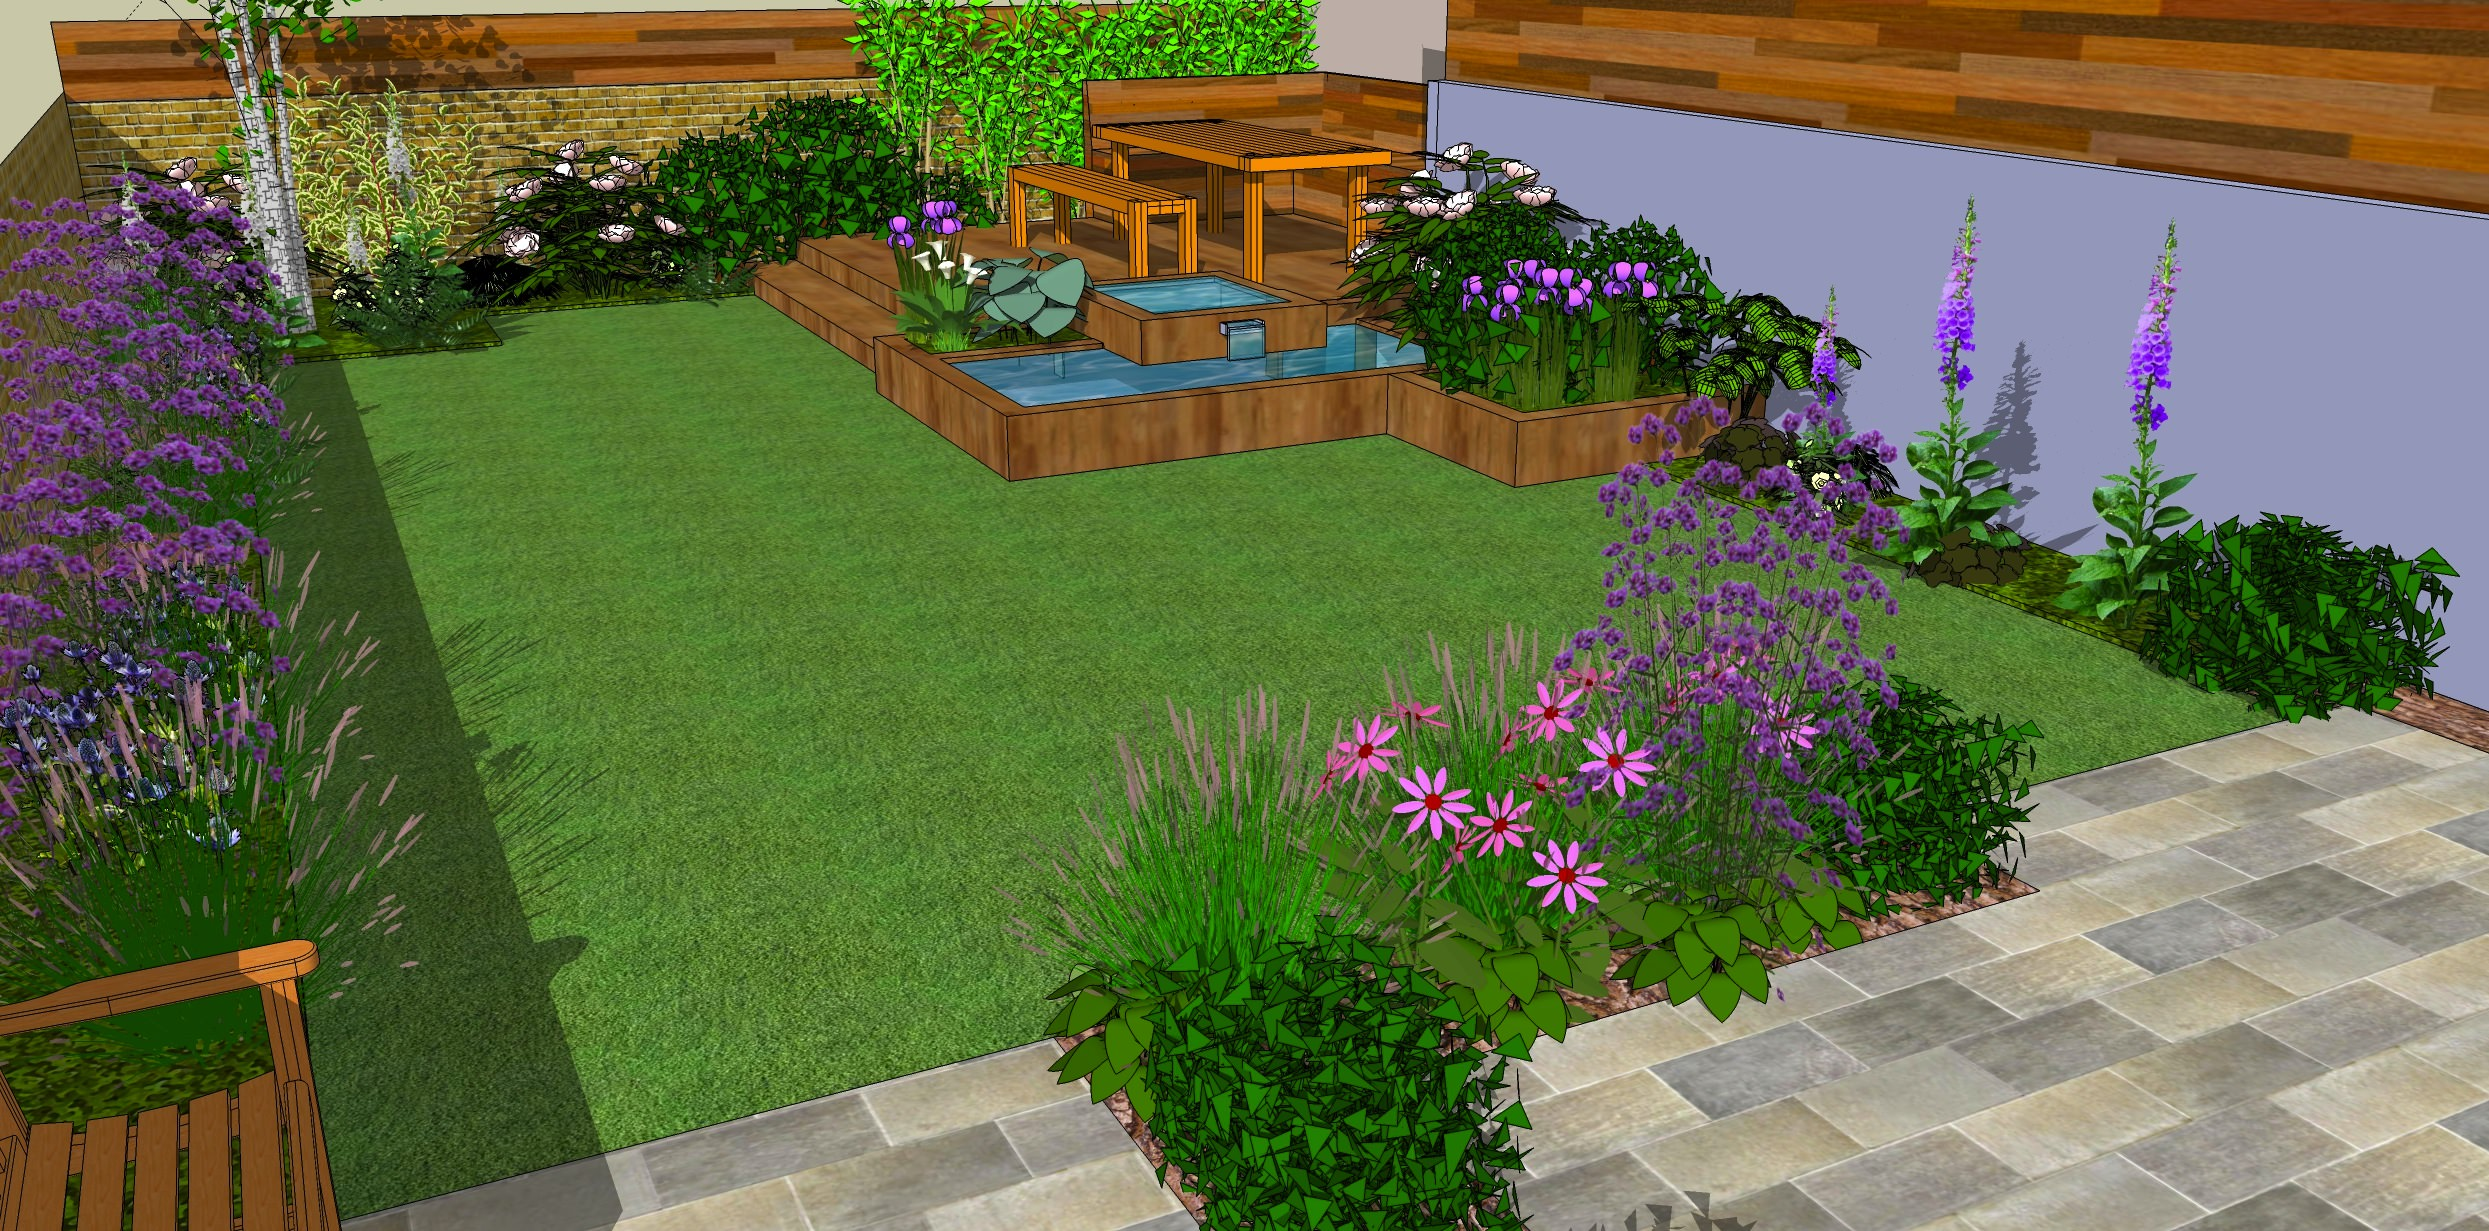 Low maintenance garden designs garden club london for Small no maintenance garden